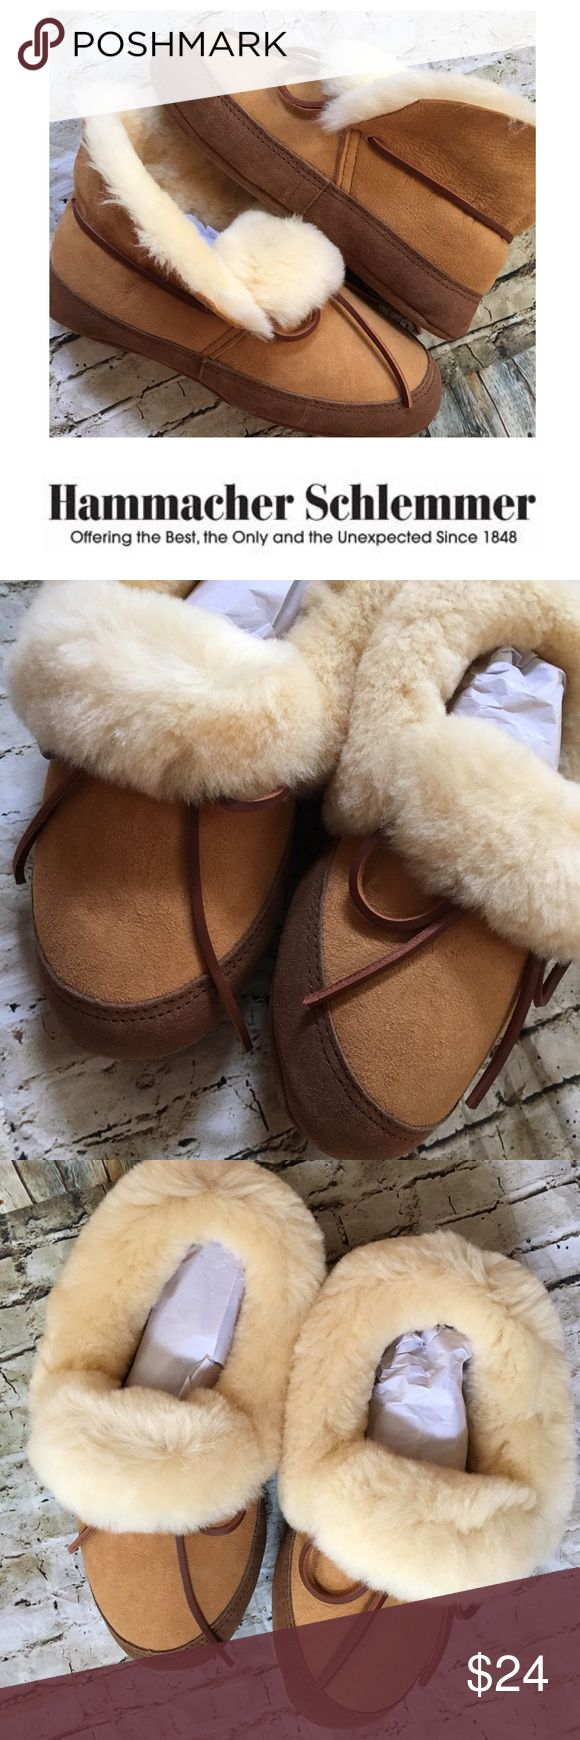 """NEW HS Androscoggin Sheepskin Slippers Size XS NEW Hammacher Schlemmer Size XS Women's 7.5-8.5 slippers are made of genuine Australian sheepskin and offer exceptional comfort and warmth. Suede uppers and sidewalls are bolstered with extra insole padding for a more cushioned feel. The midsole is 1/2"""" high-density foam, topped by a 1/8"""" layer of memory foam that molds to your foot. My daughter had these on her wish list, got them and never wore them. They are on HS right now for $90. No box…"""